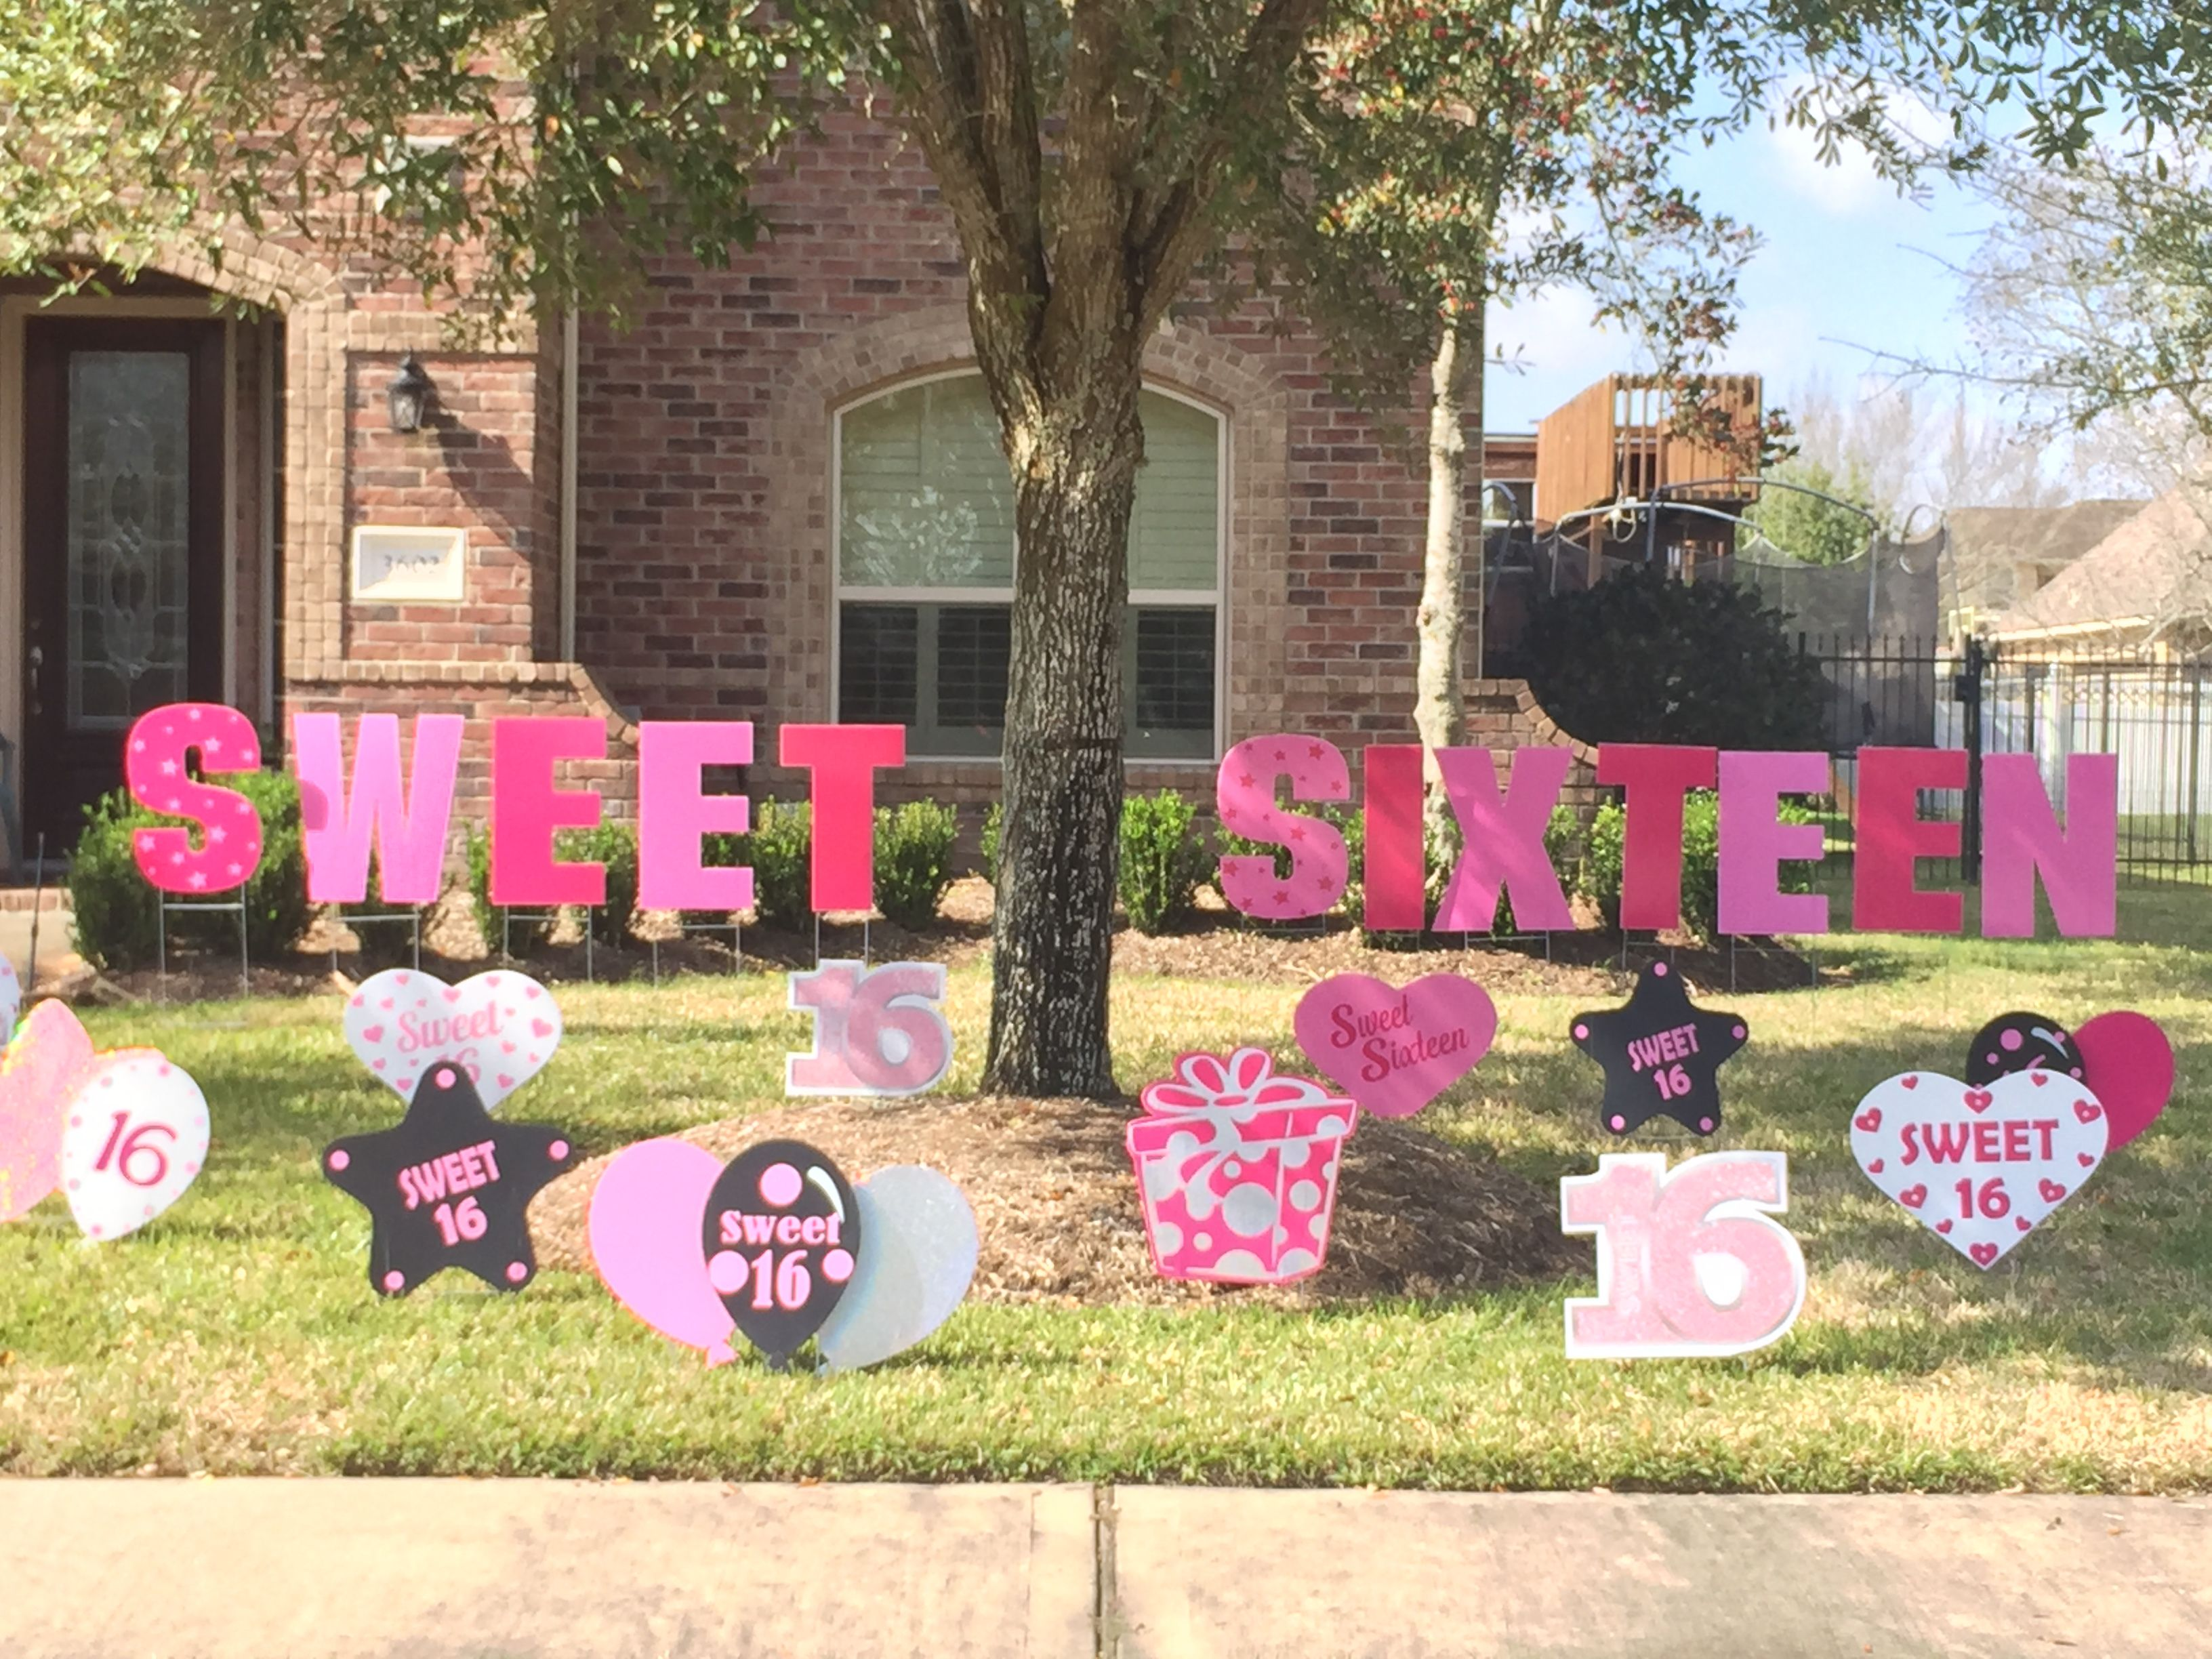 Introducing Our Beautiful New Sweet Six Lawn Letters